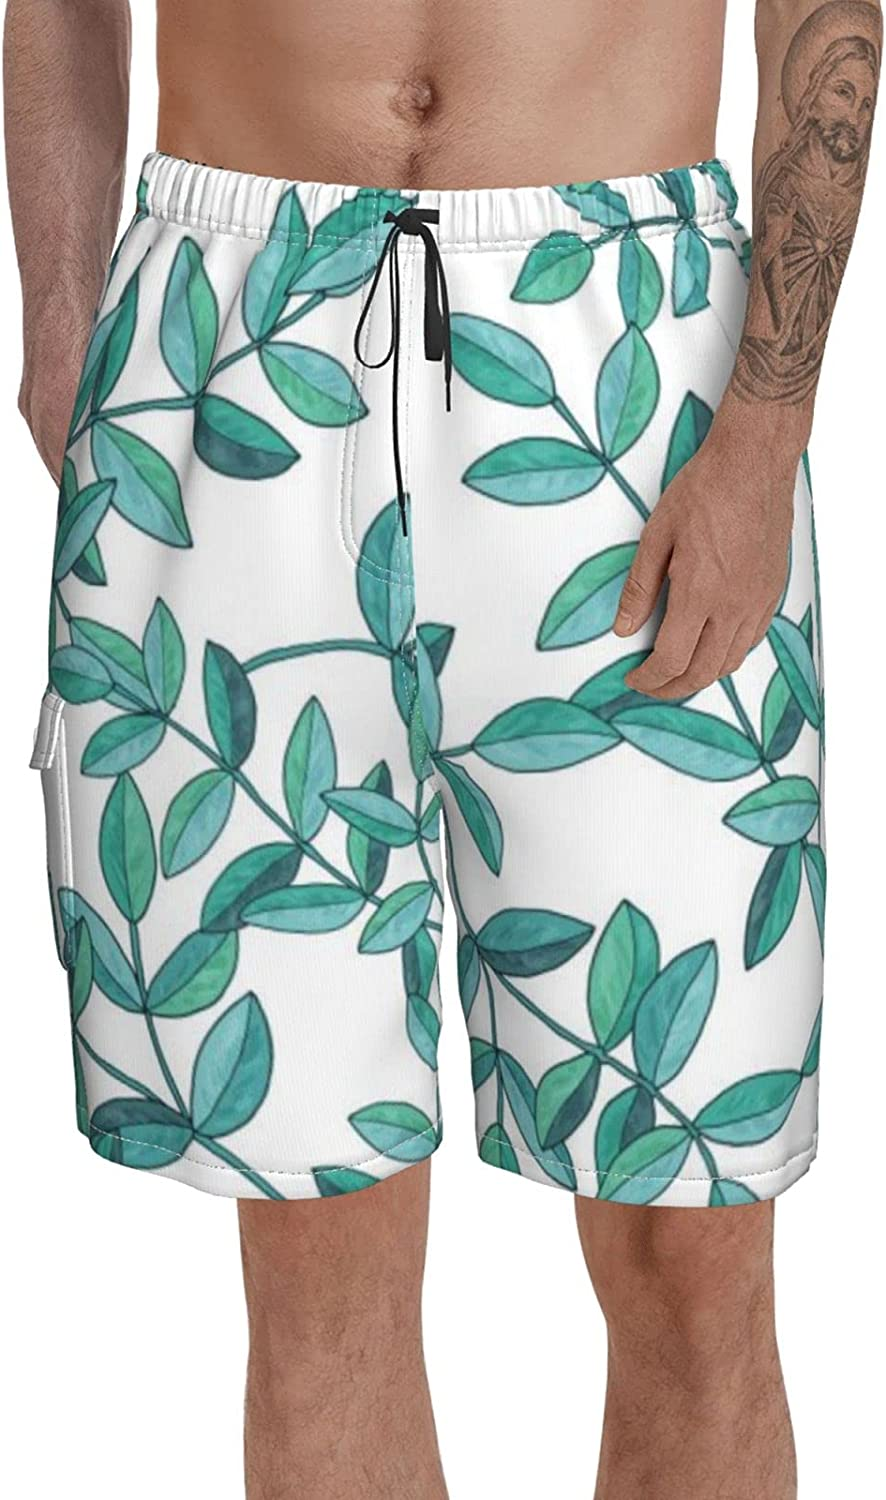 Male Swim Trunks Stretch Bathing Suit Cute Floral Mid Length Volley Shorts for Summer